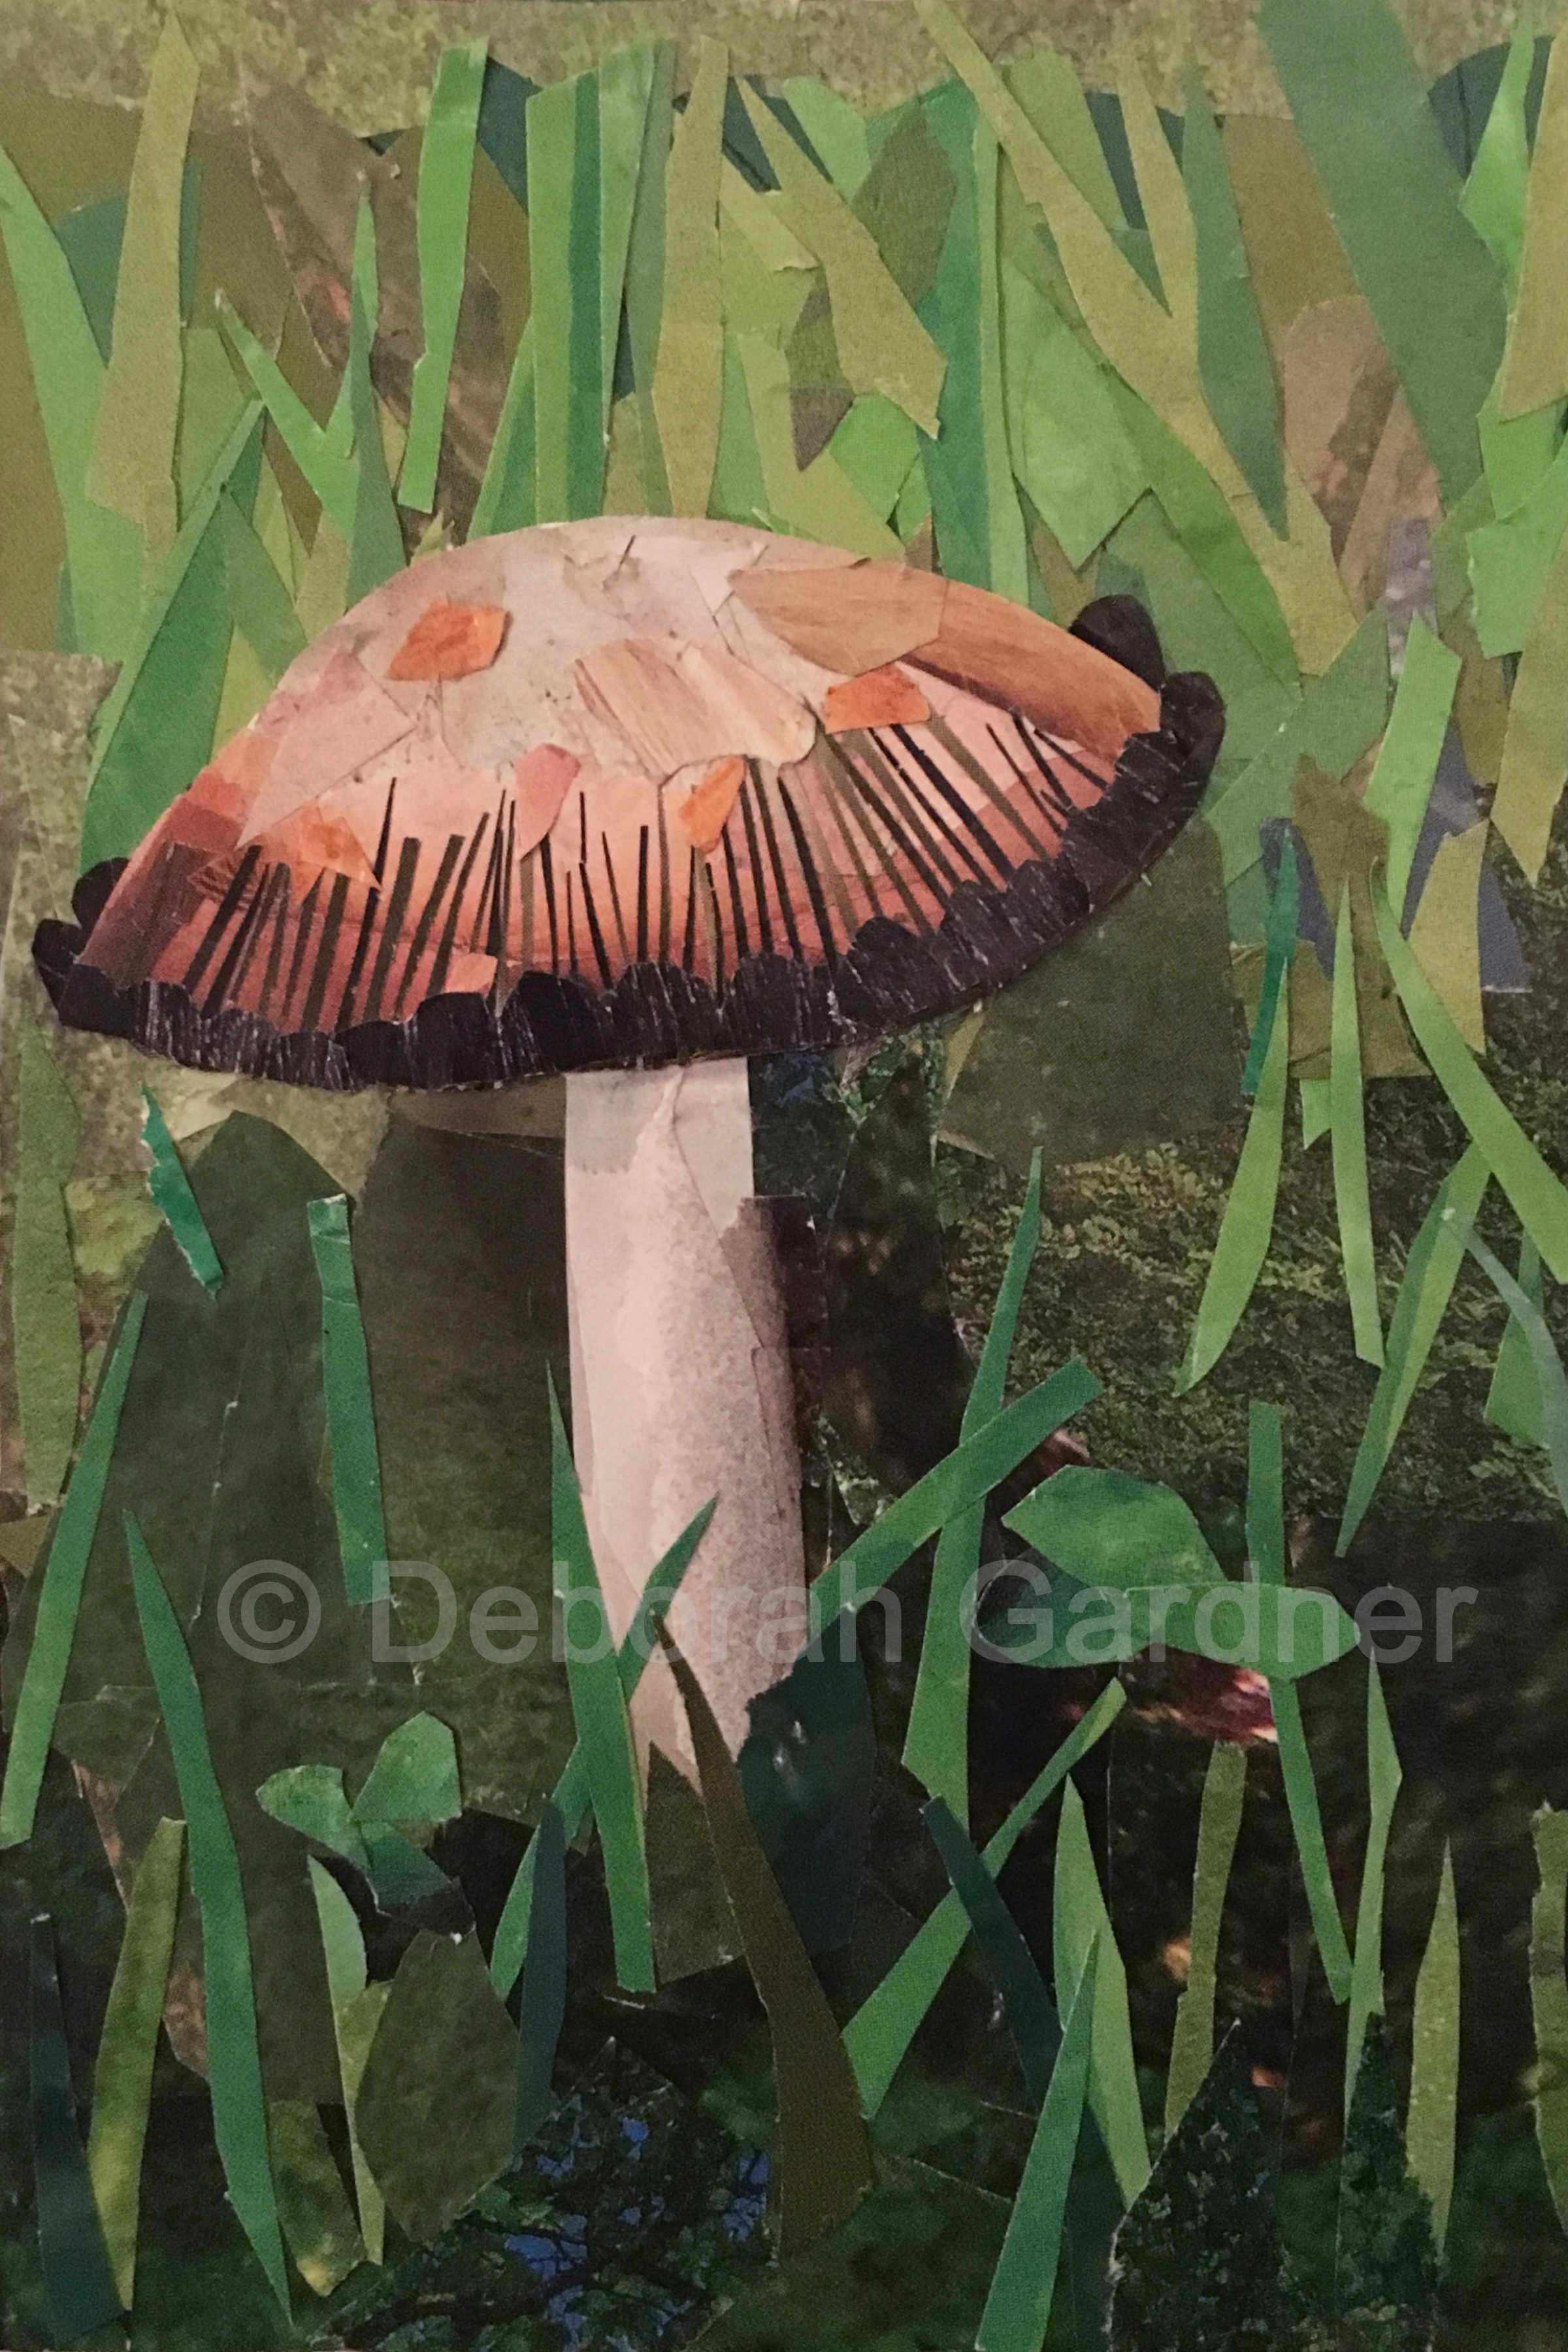 Image of a collage representing a wild mushroom (shaggy mane).